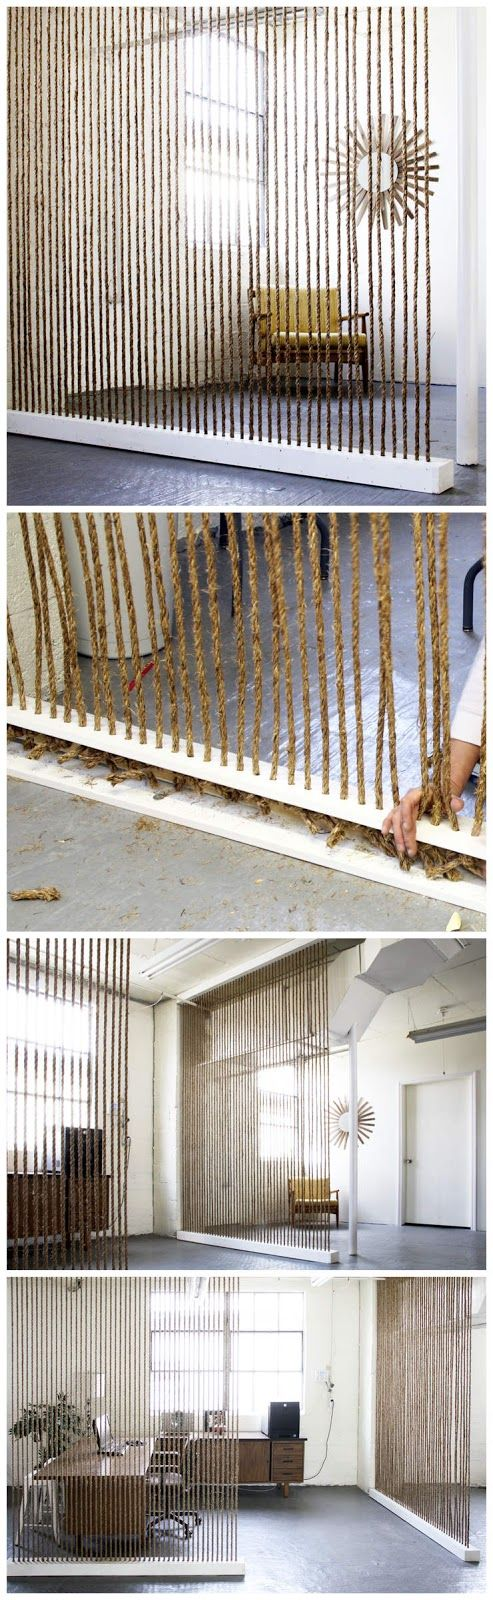 DIY Rope Wall Divider